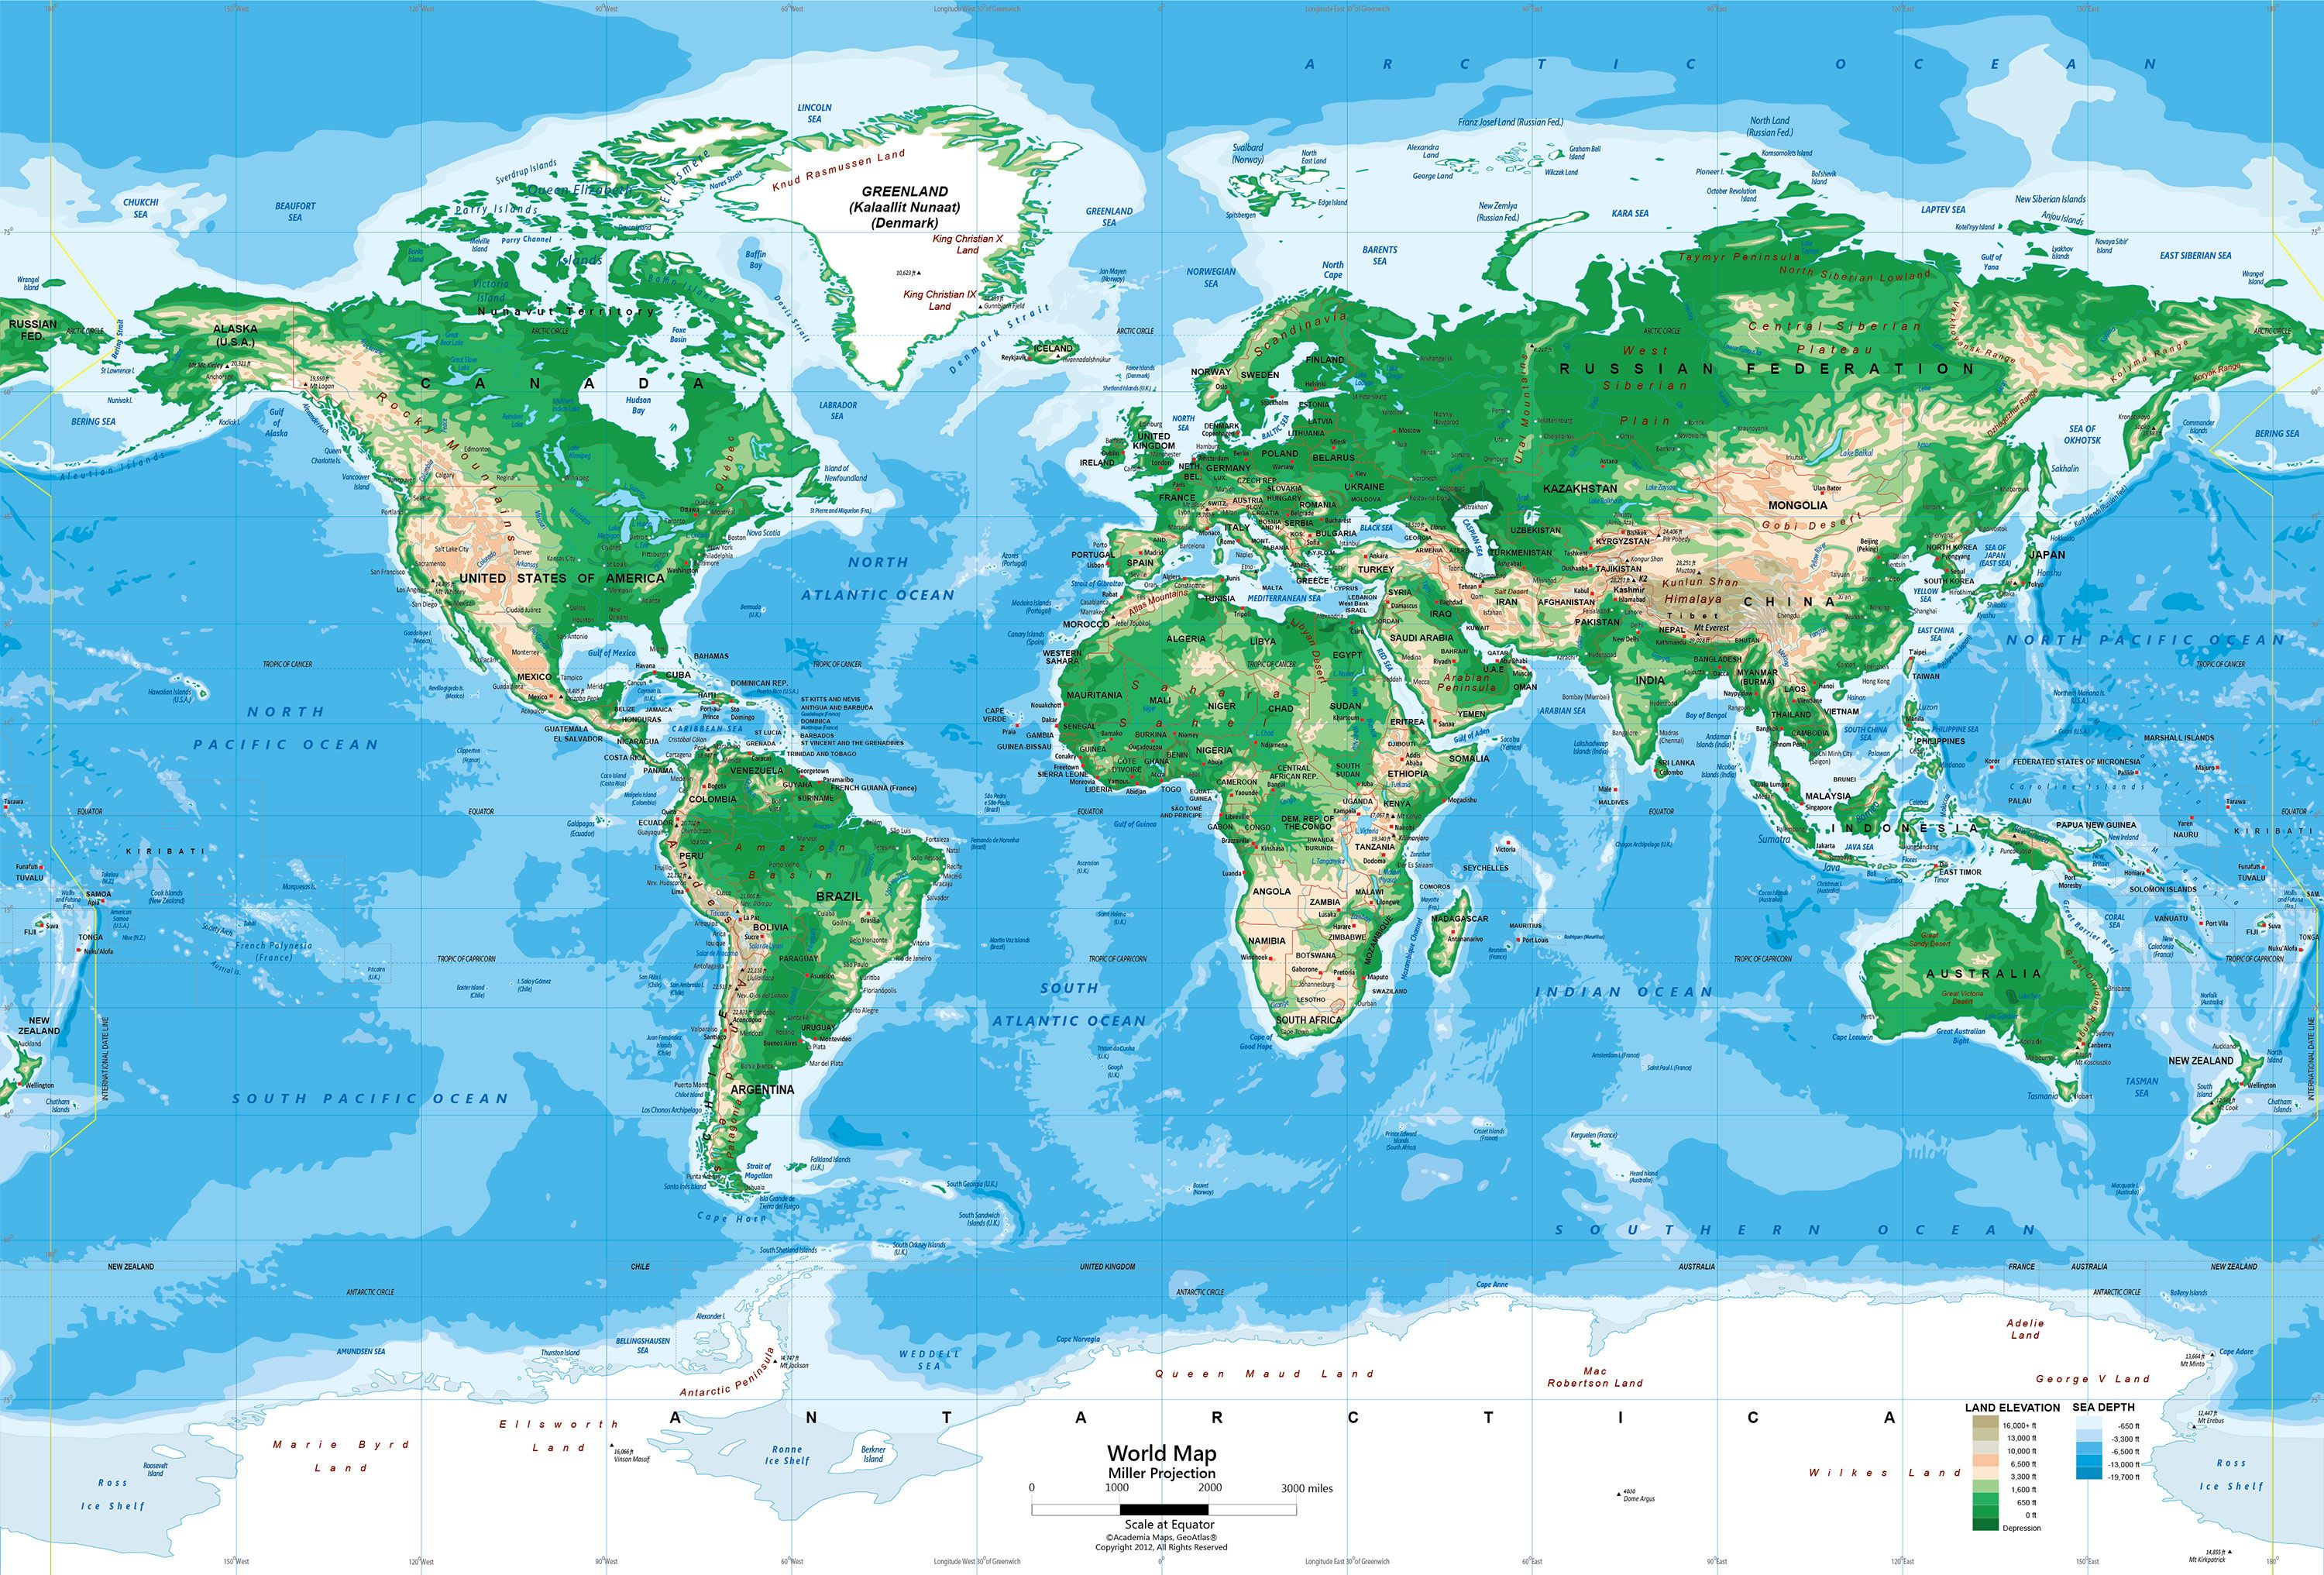 World Topography Map Wall Mural Miller Projection Burnham - World topography